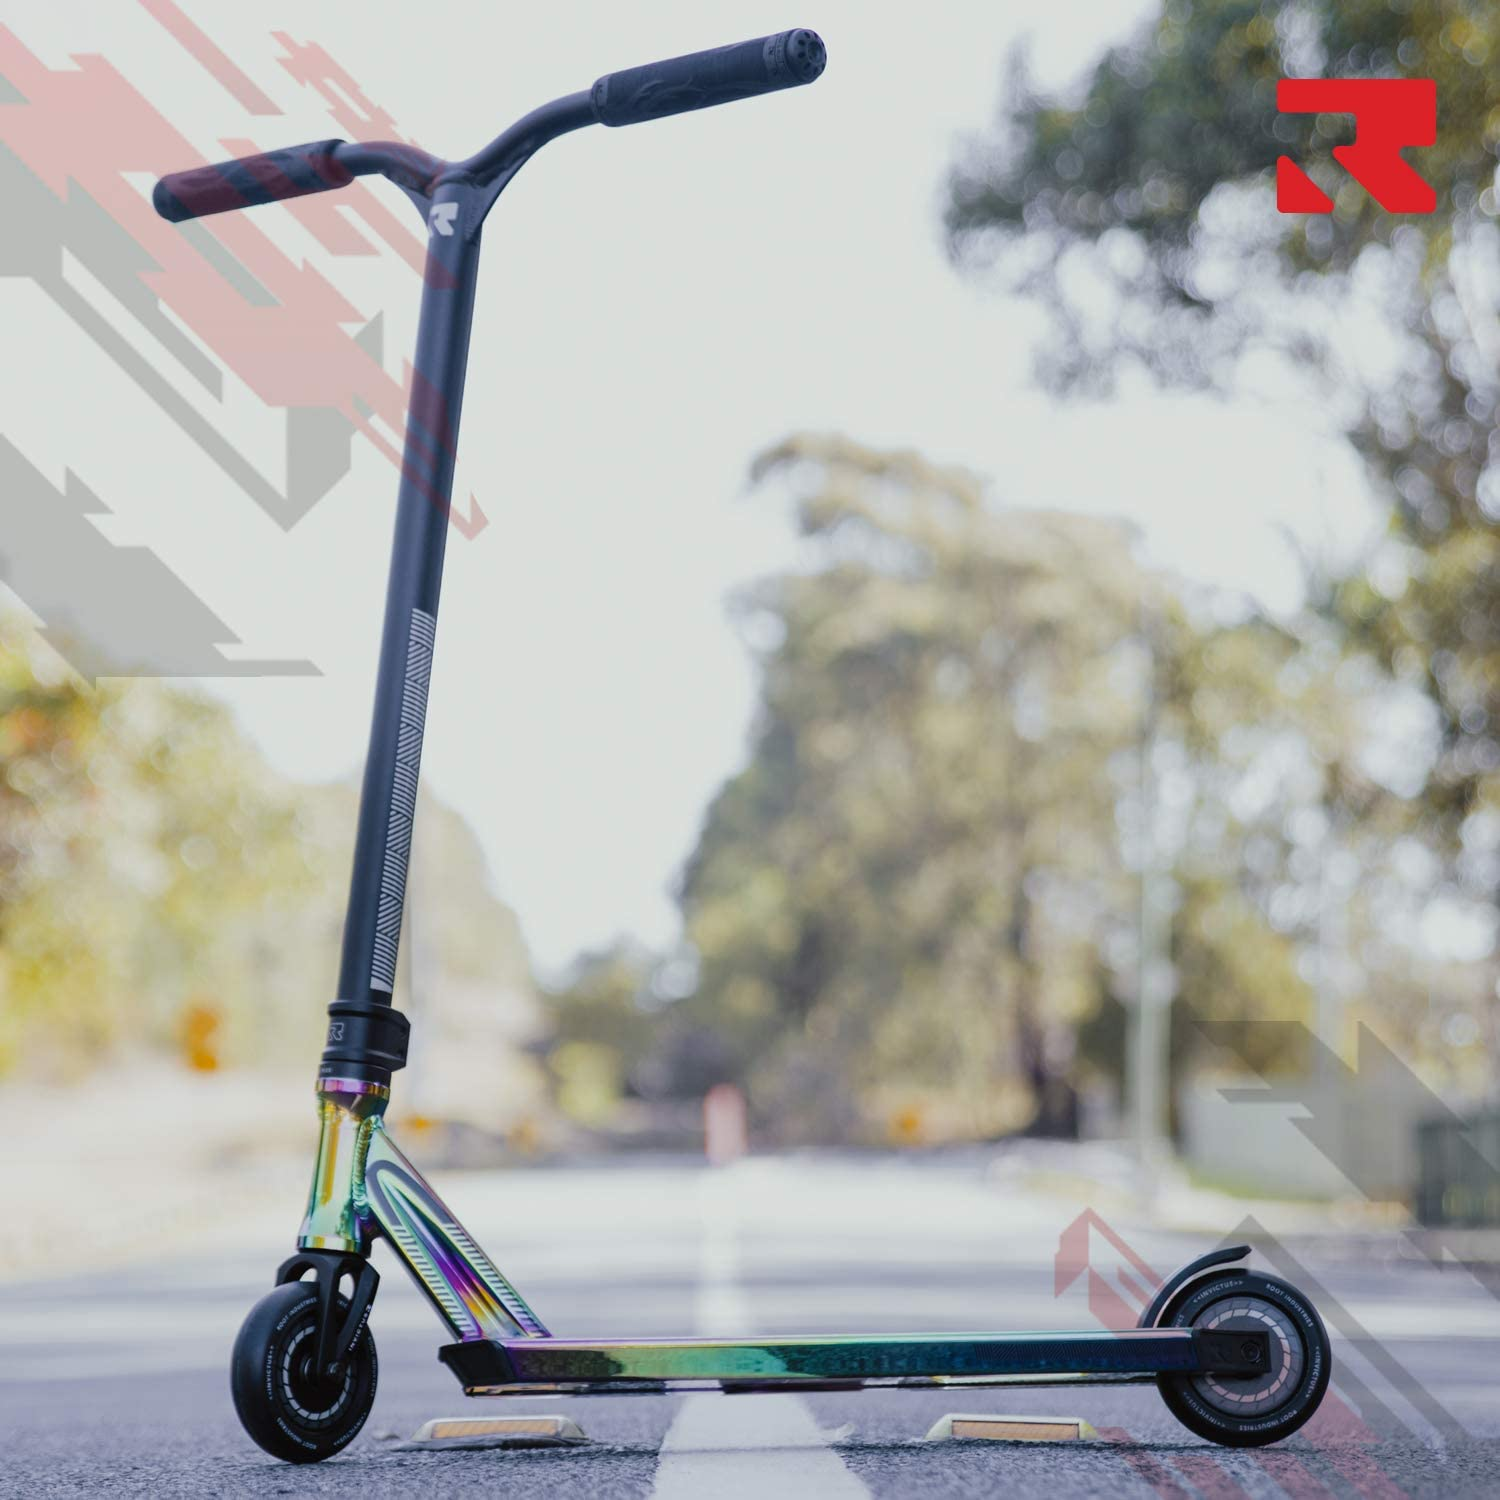 Invictus Complete Scooter – Stunt Scooters – Professional Scooter for any Age Rider – Pro Scooters for Kids Pro Scooters for Adults – Pro Scooter Deck, Pro Scooter Wheels – Ready to Ride Trick Scooter